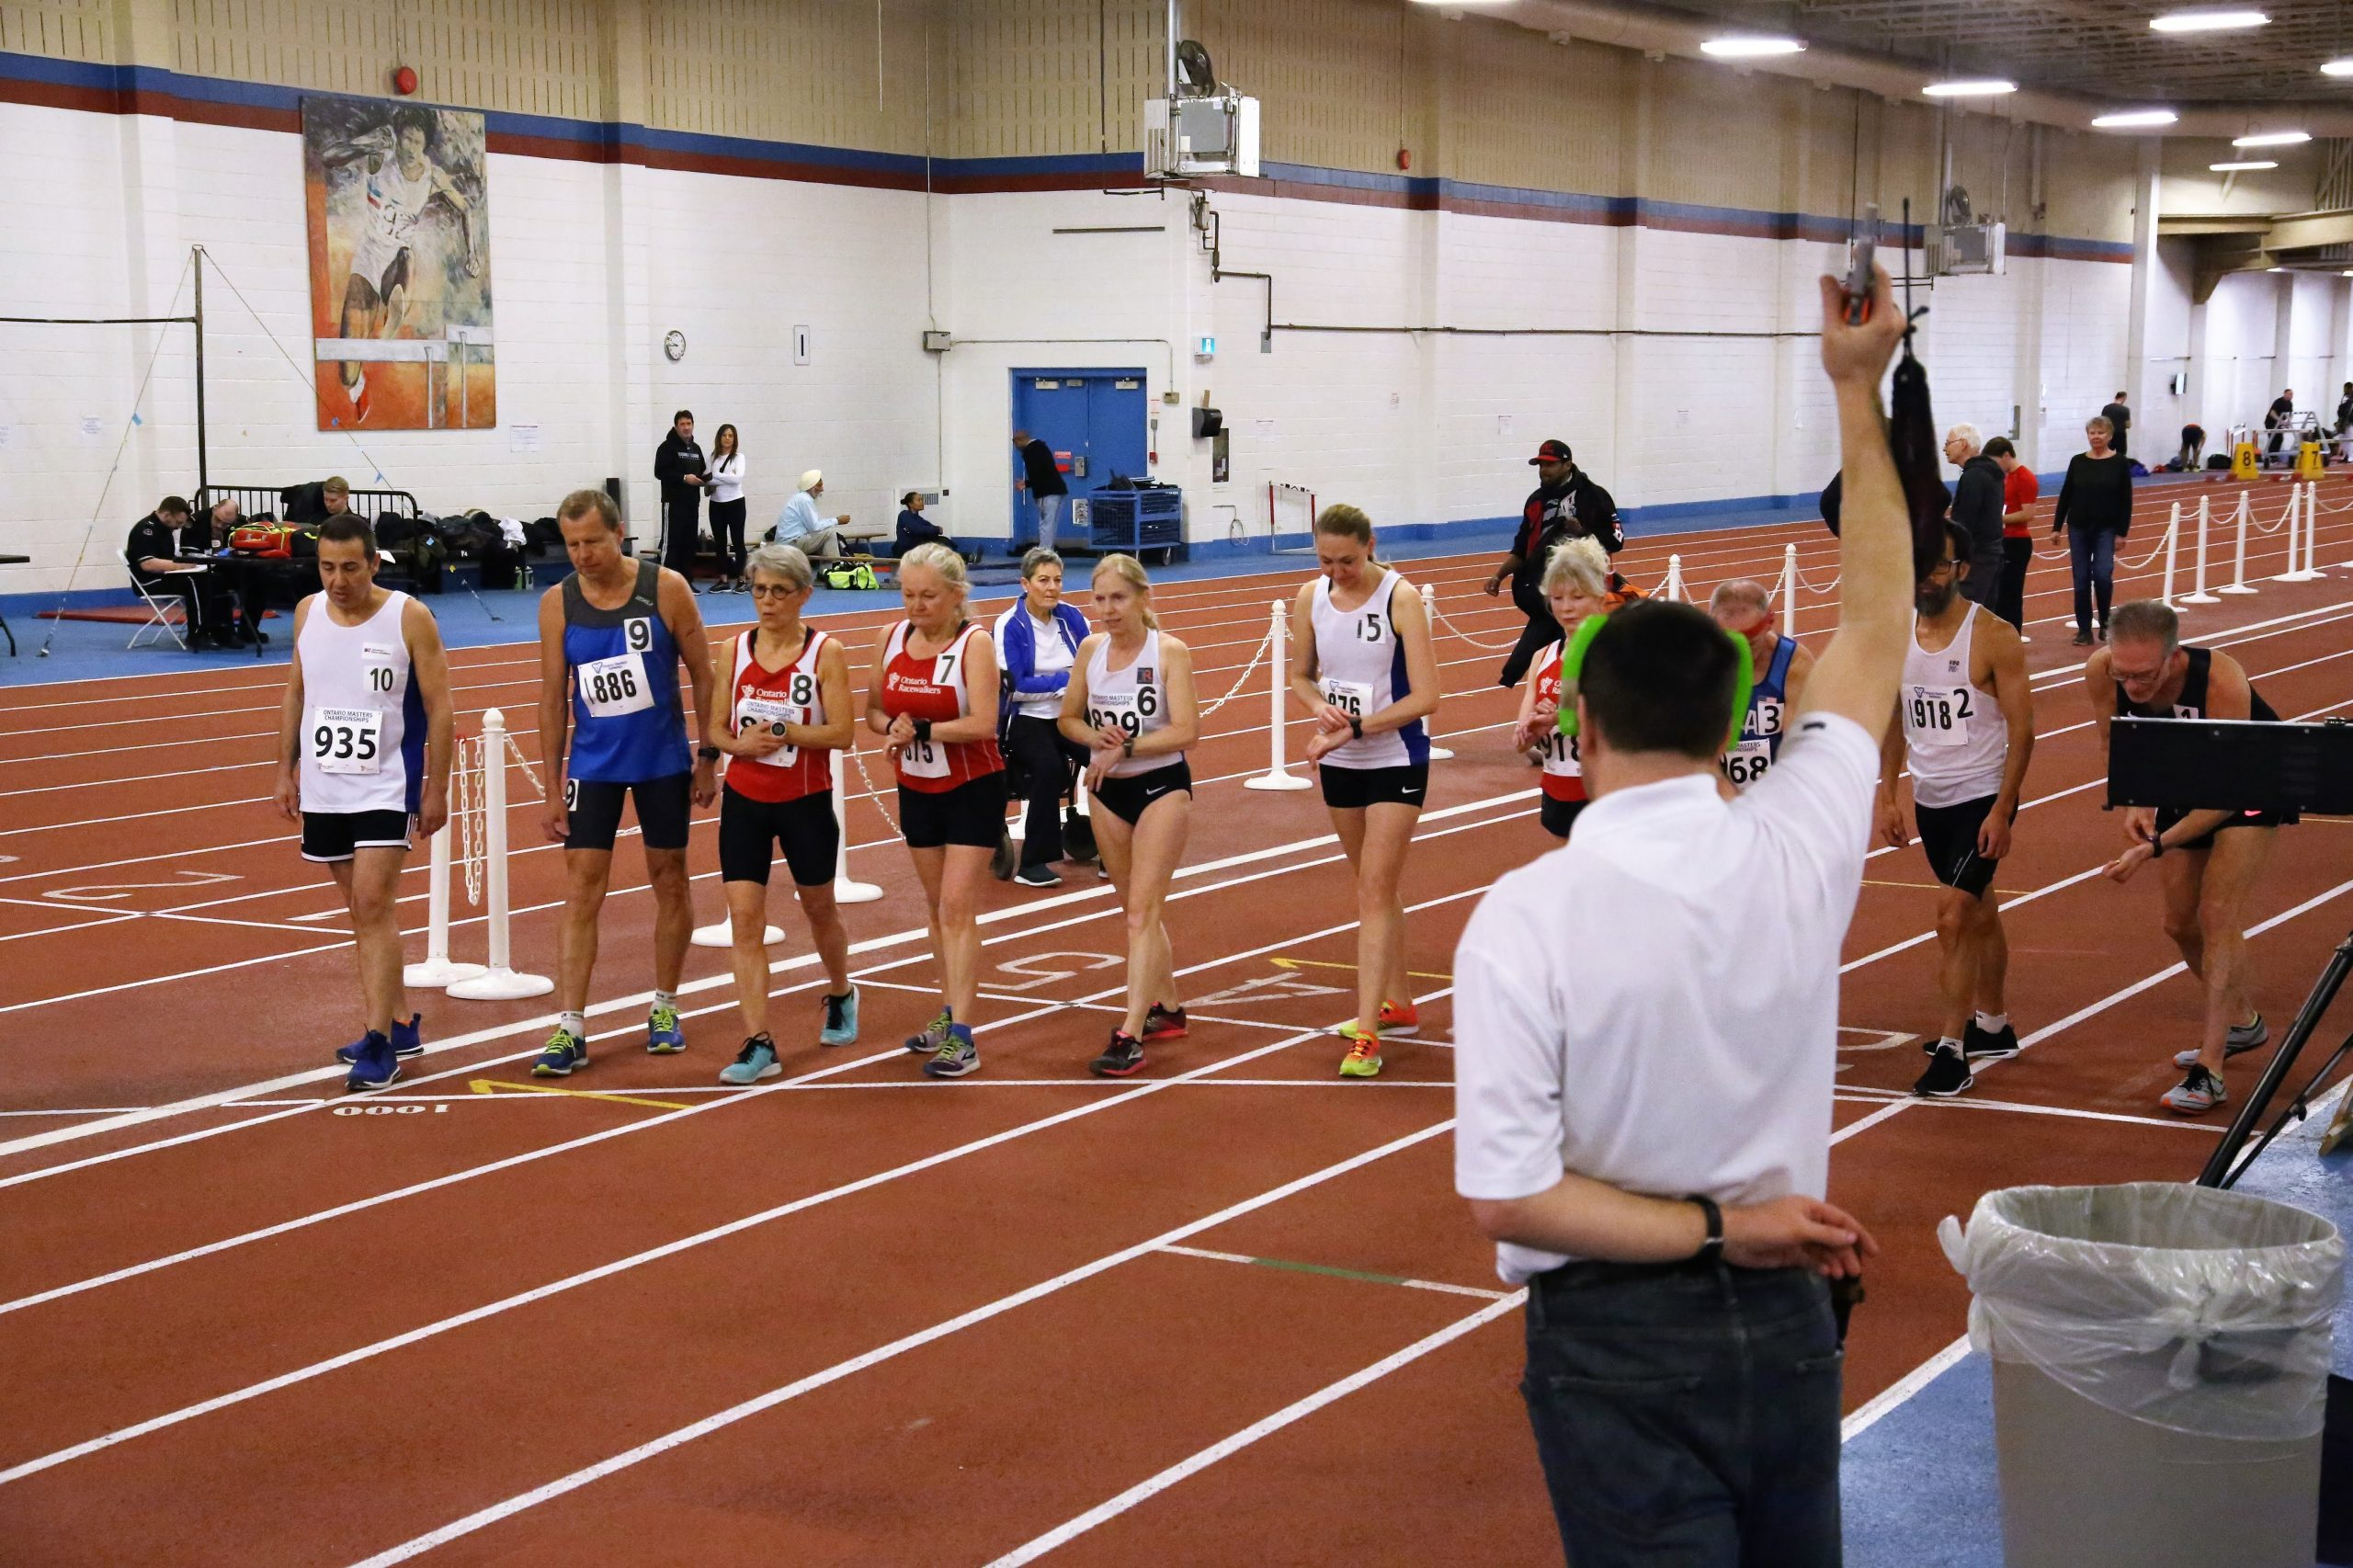 A group of race-walkers at the starting line at an indoor event